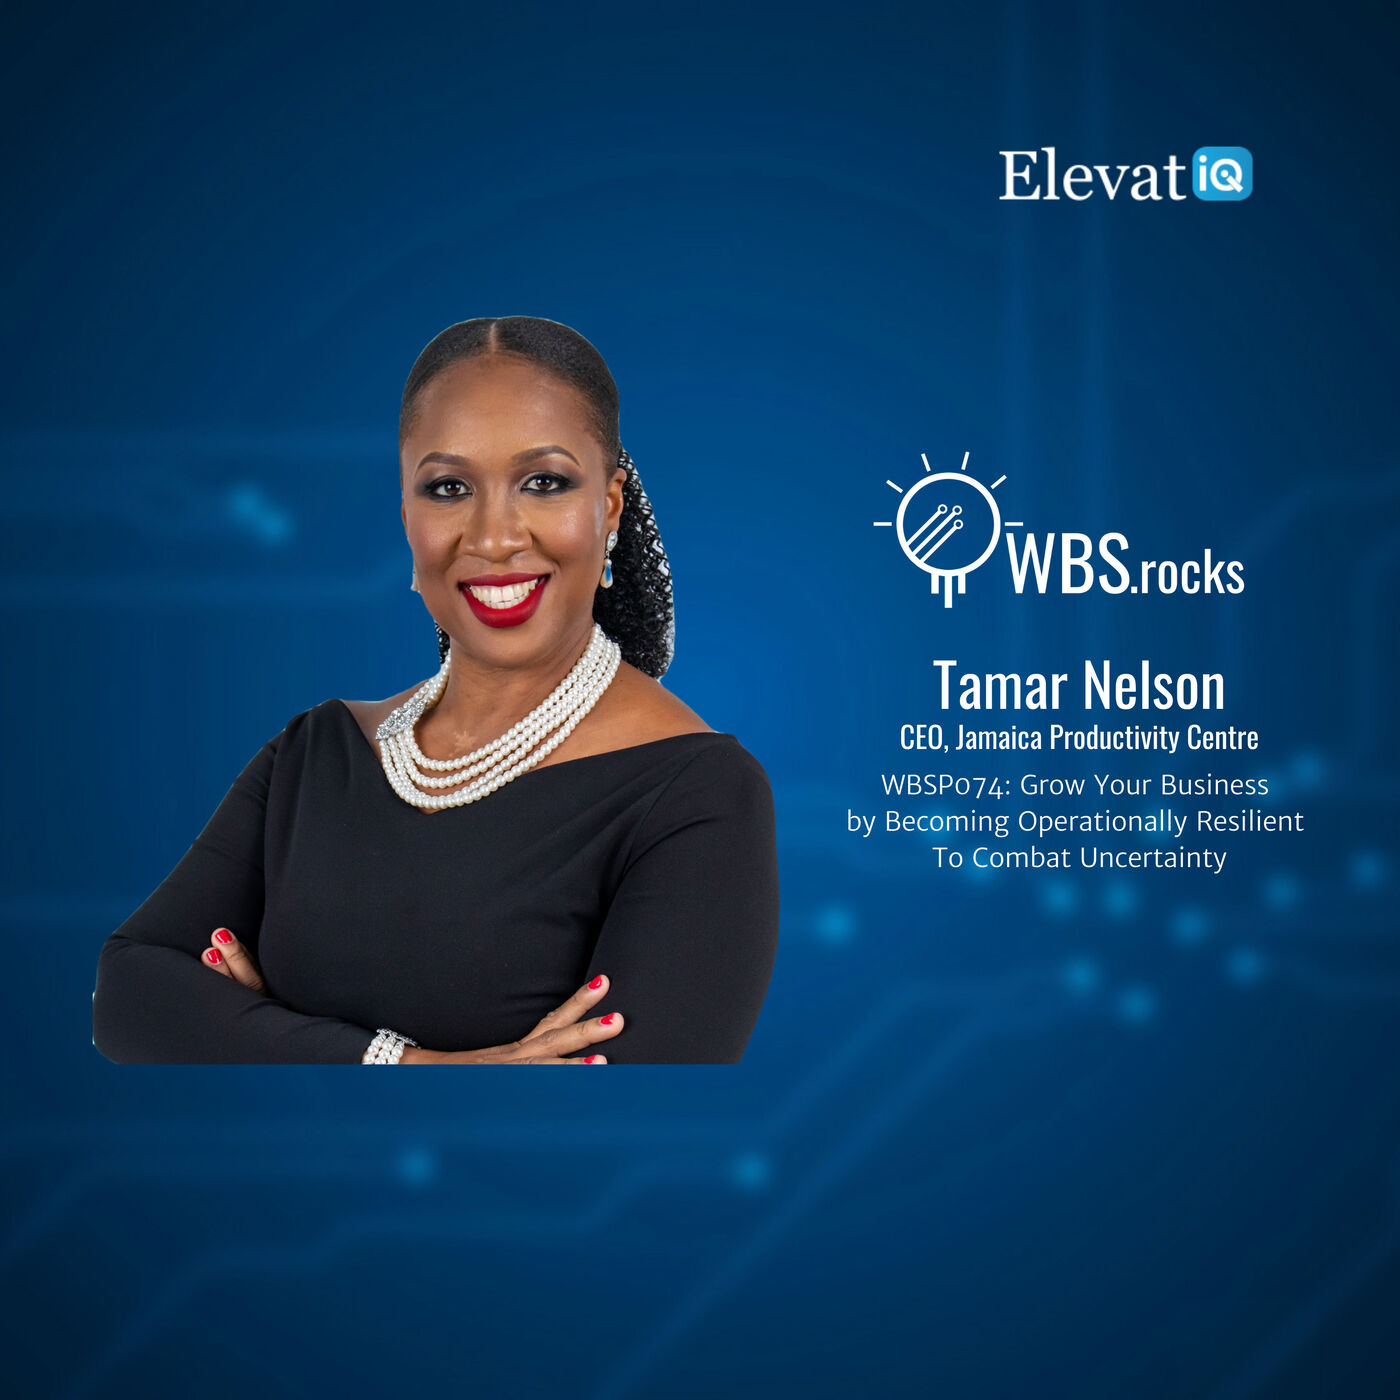 WBSP074: Grow Your Business by Becoming Operationally Resilient To Combat Uncertainty w/ Tamar Nelson